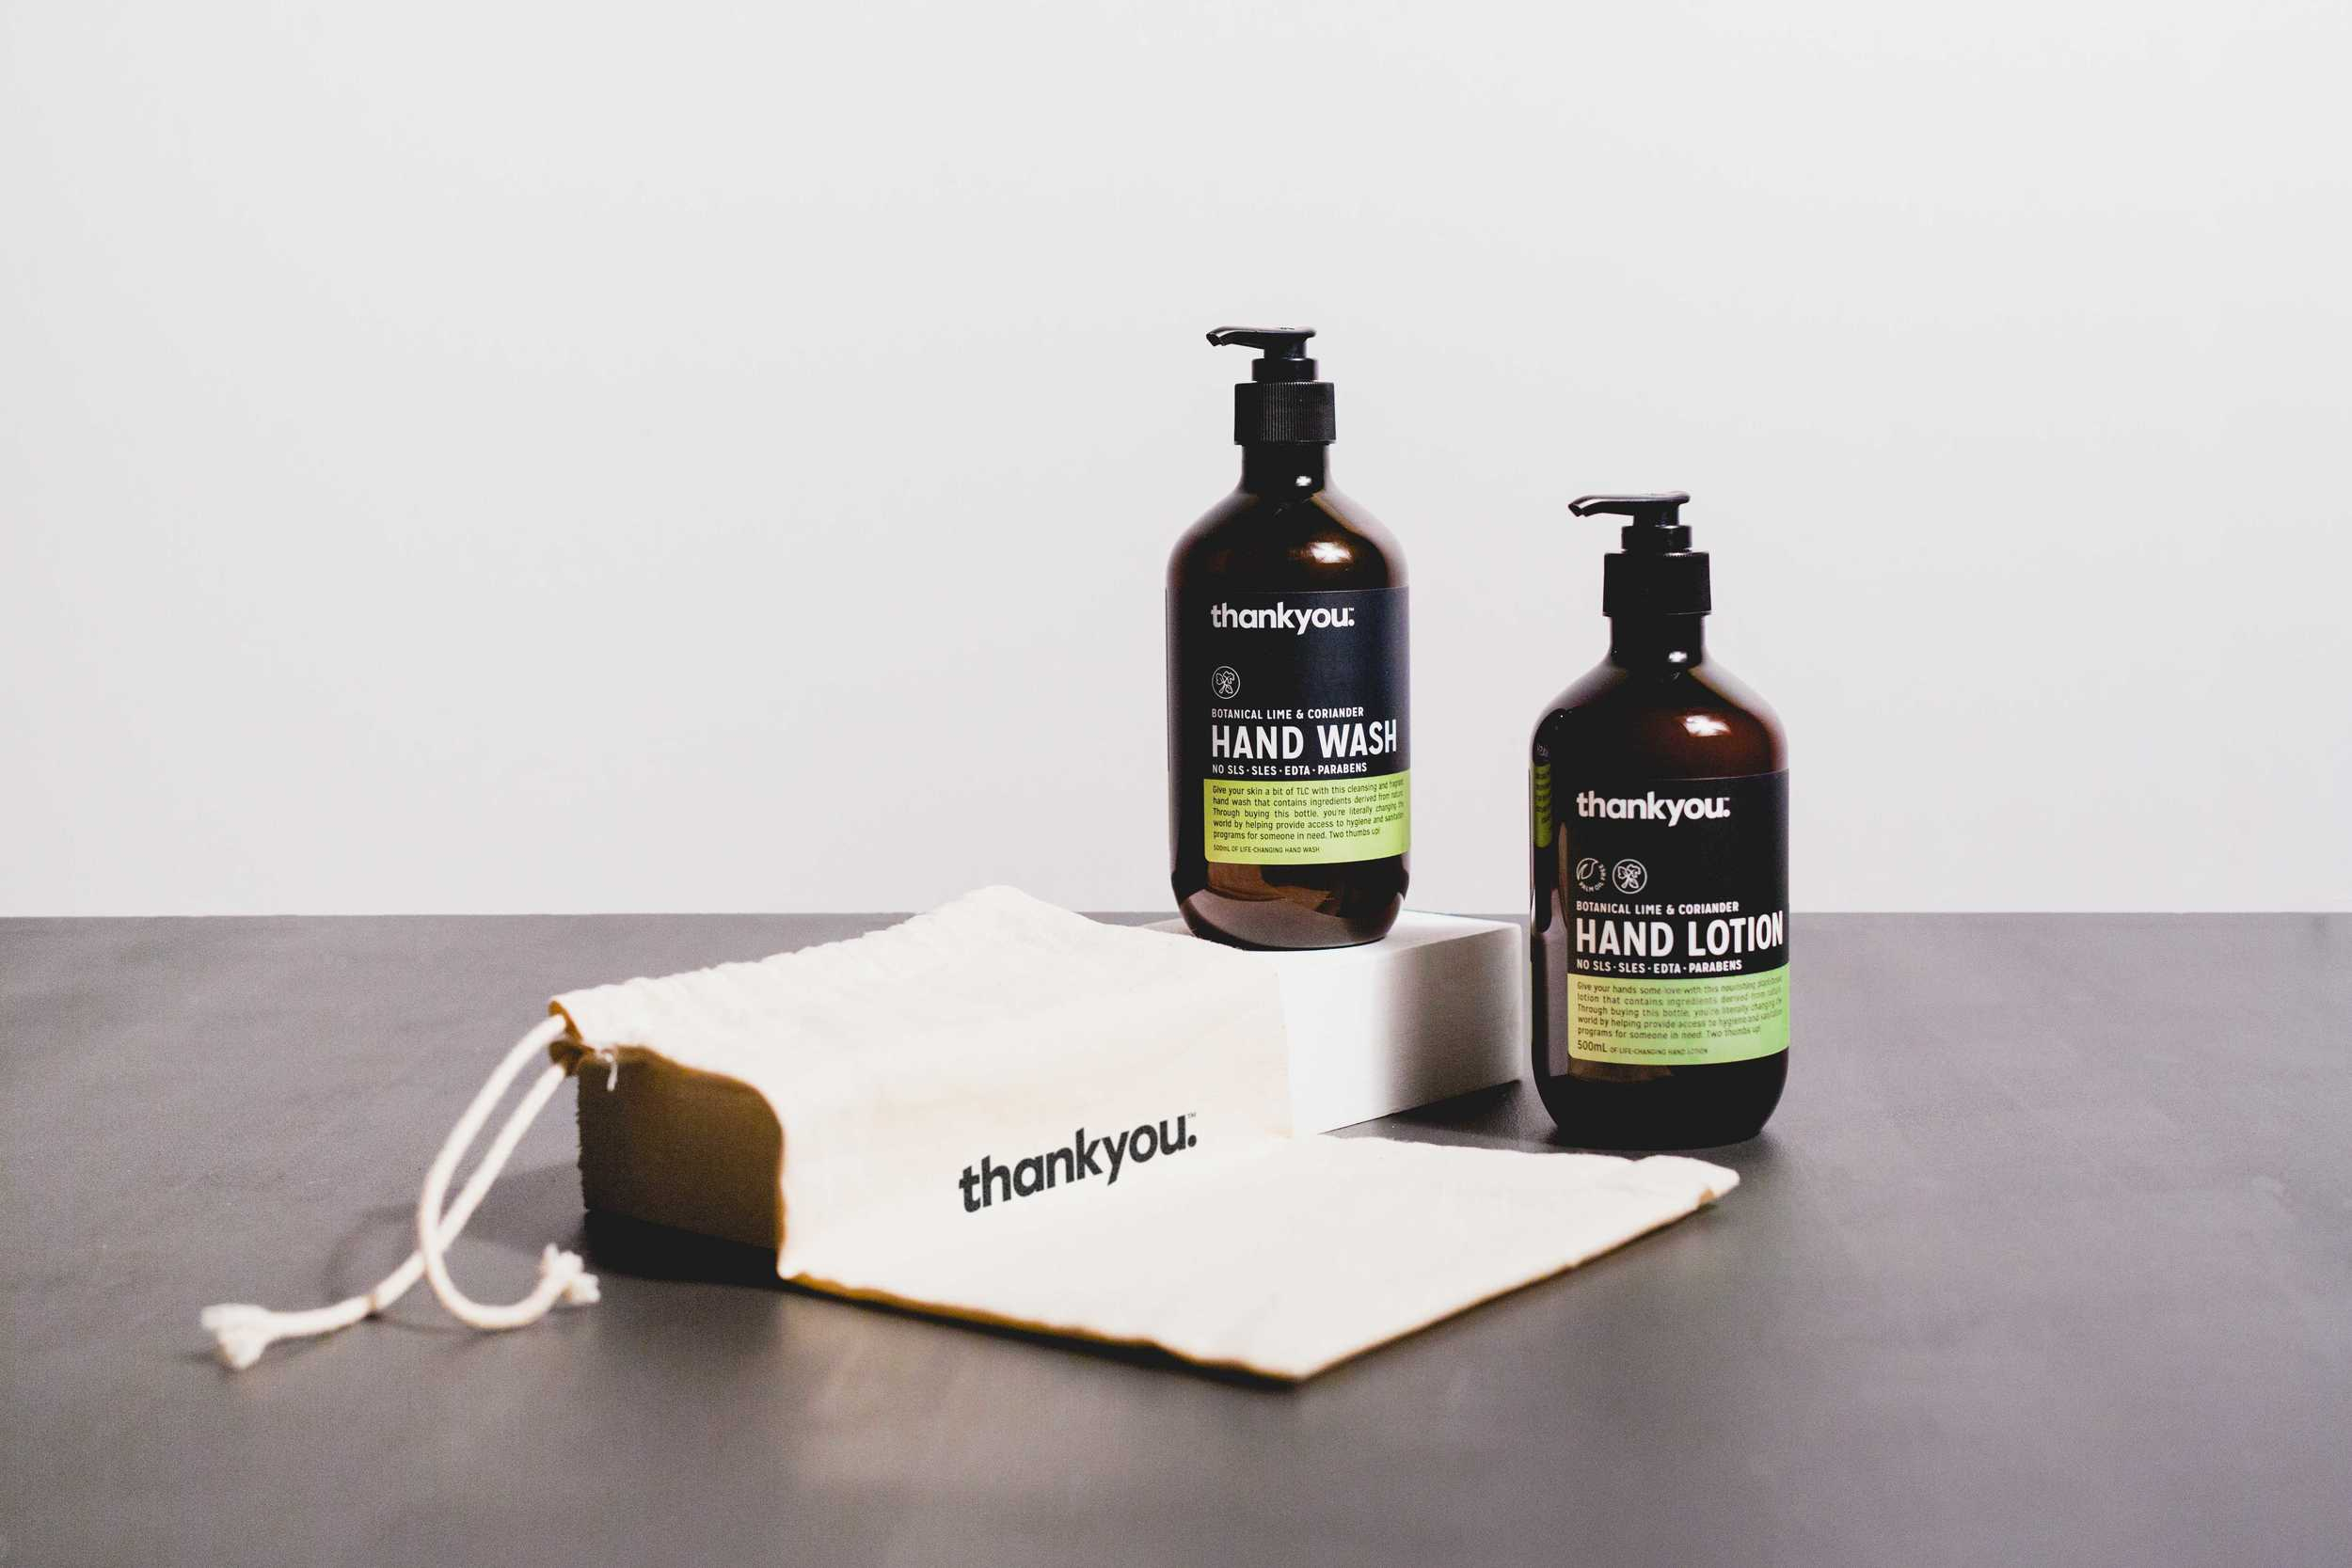 Thankyou -  Special KK Hand wash and Hand Lotion pack $15.00